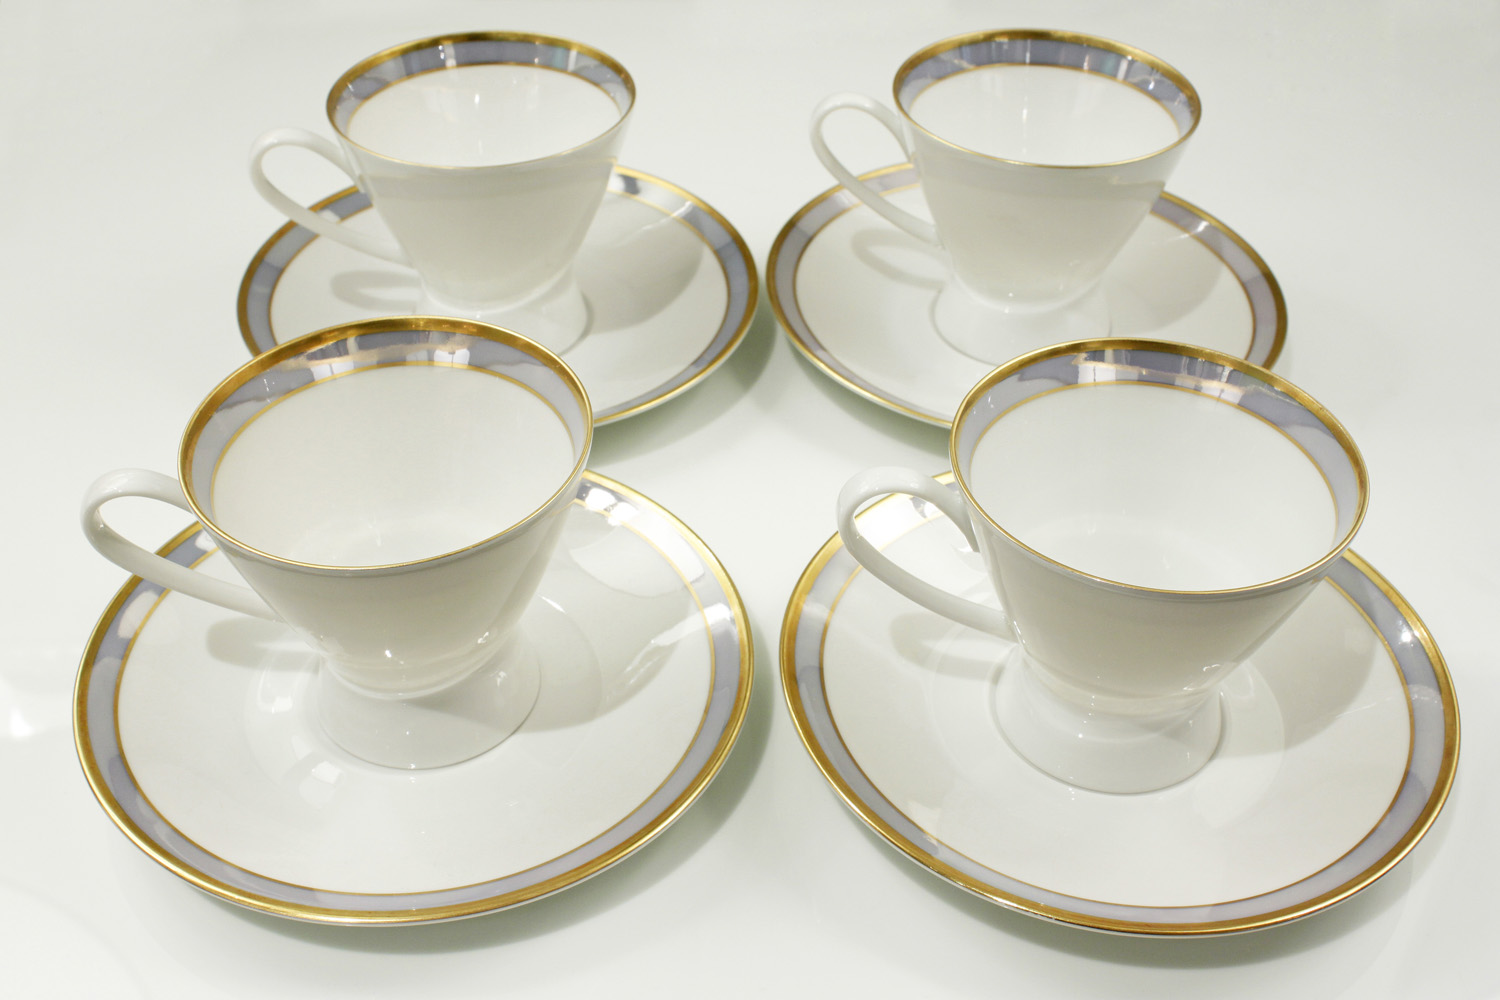 Rosenthal tea service 6 accessory151 hires detail 2.jpg